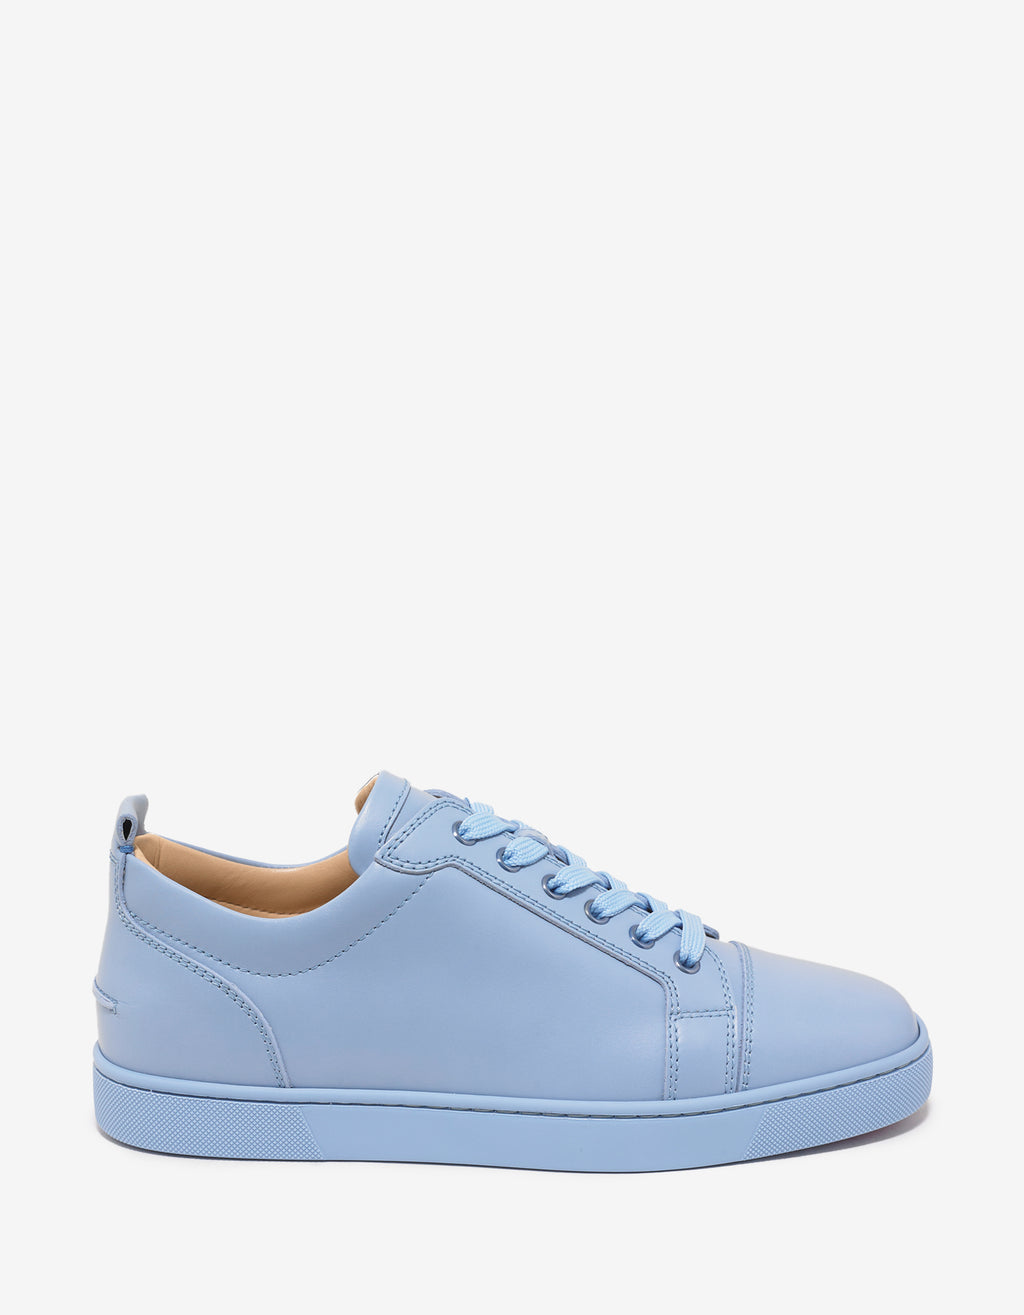 Louis Junior Flat Sky Blue Leather Trainers